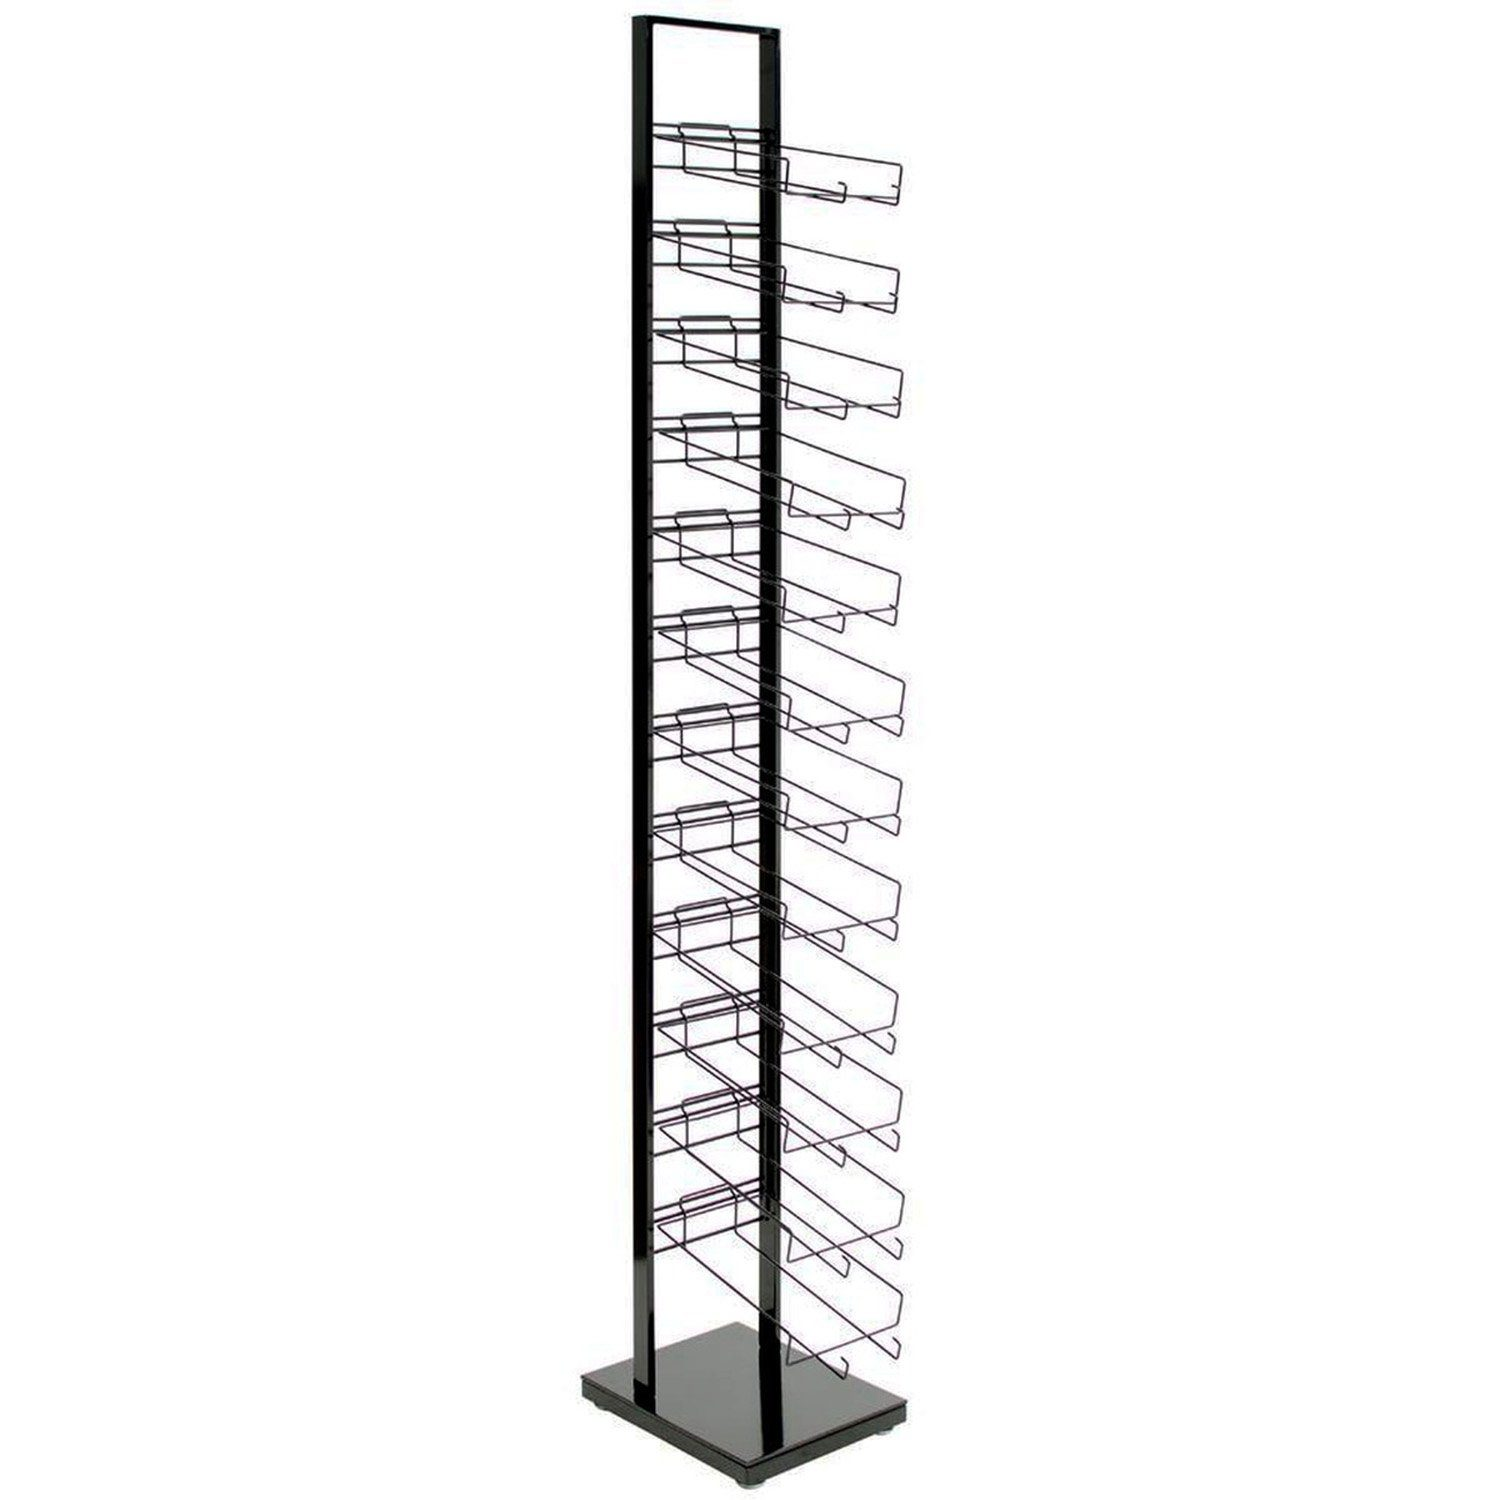 12 Tier Single Sided Cap Display - Display Fixture Warehouse Retail